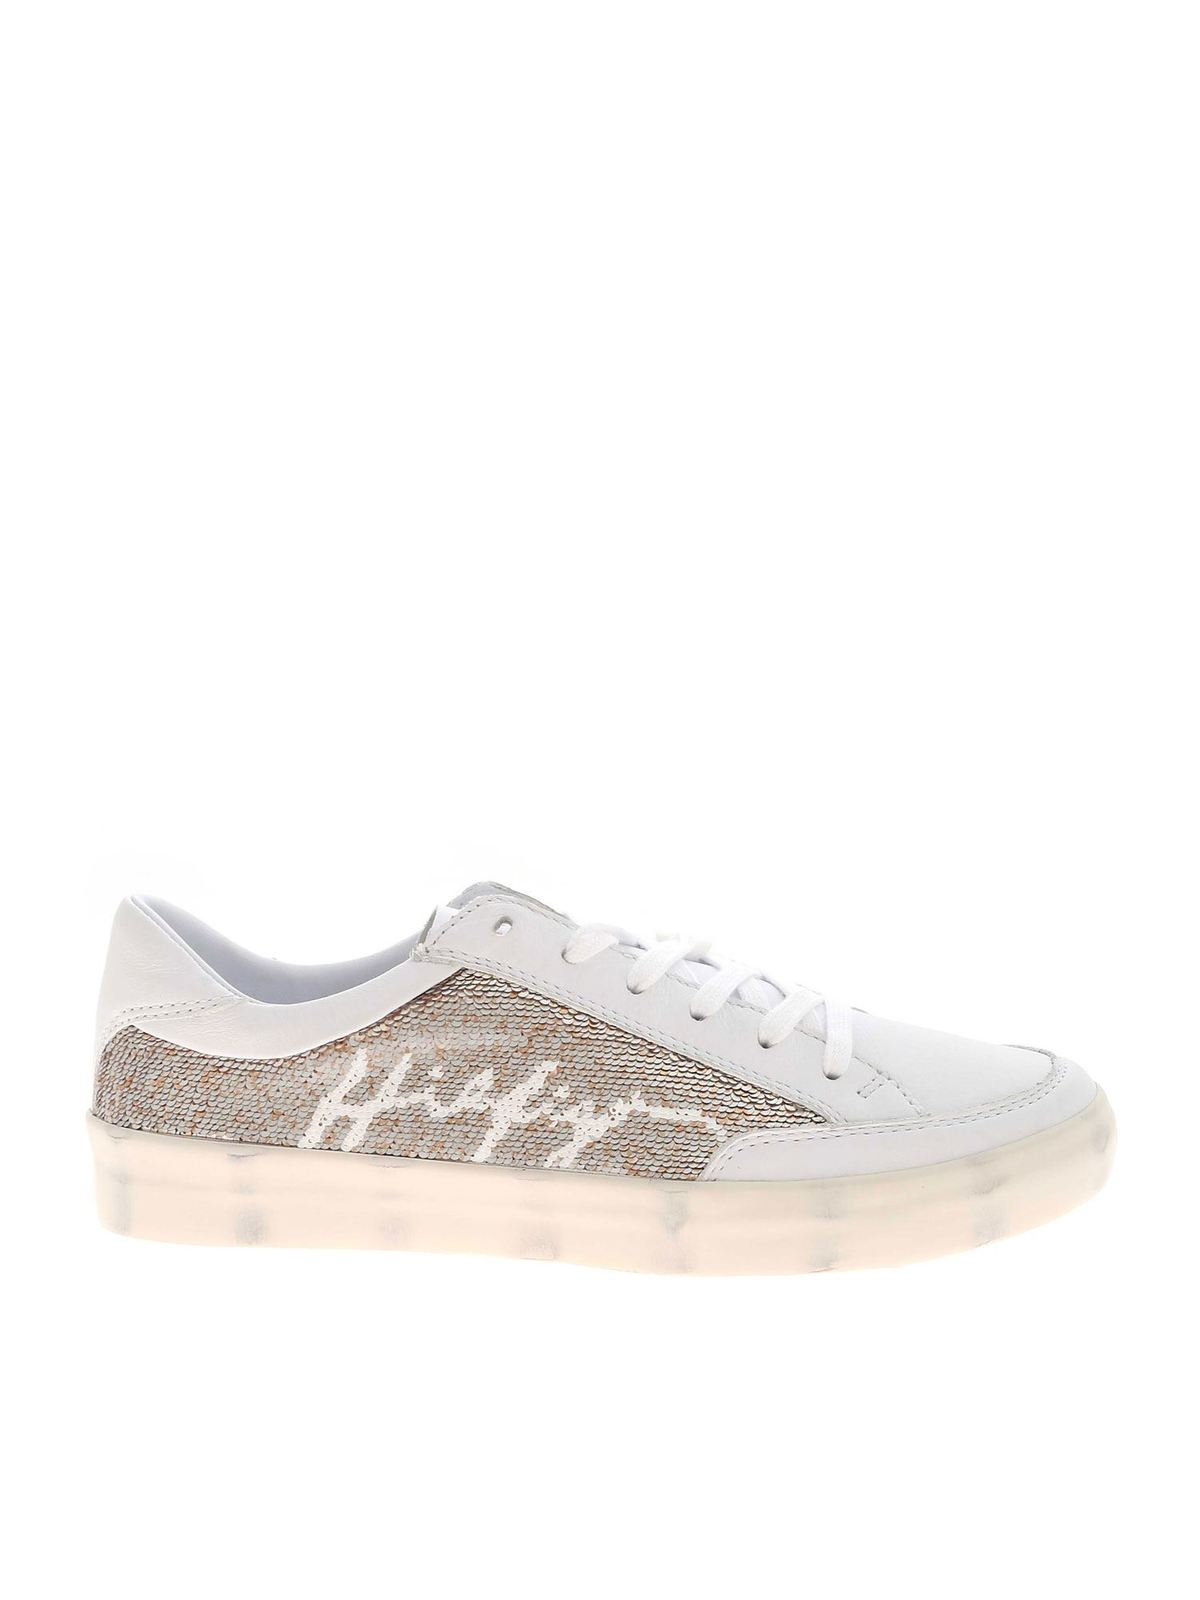 Tommy Hilfiger SEQUIN DETAIL SNEAKERS IN WHITE